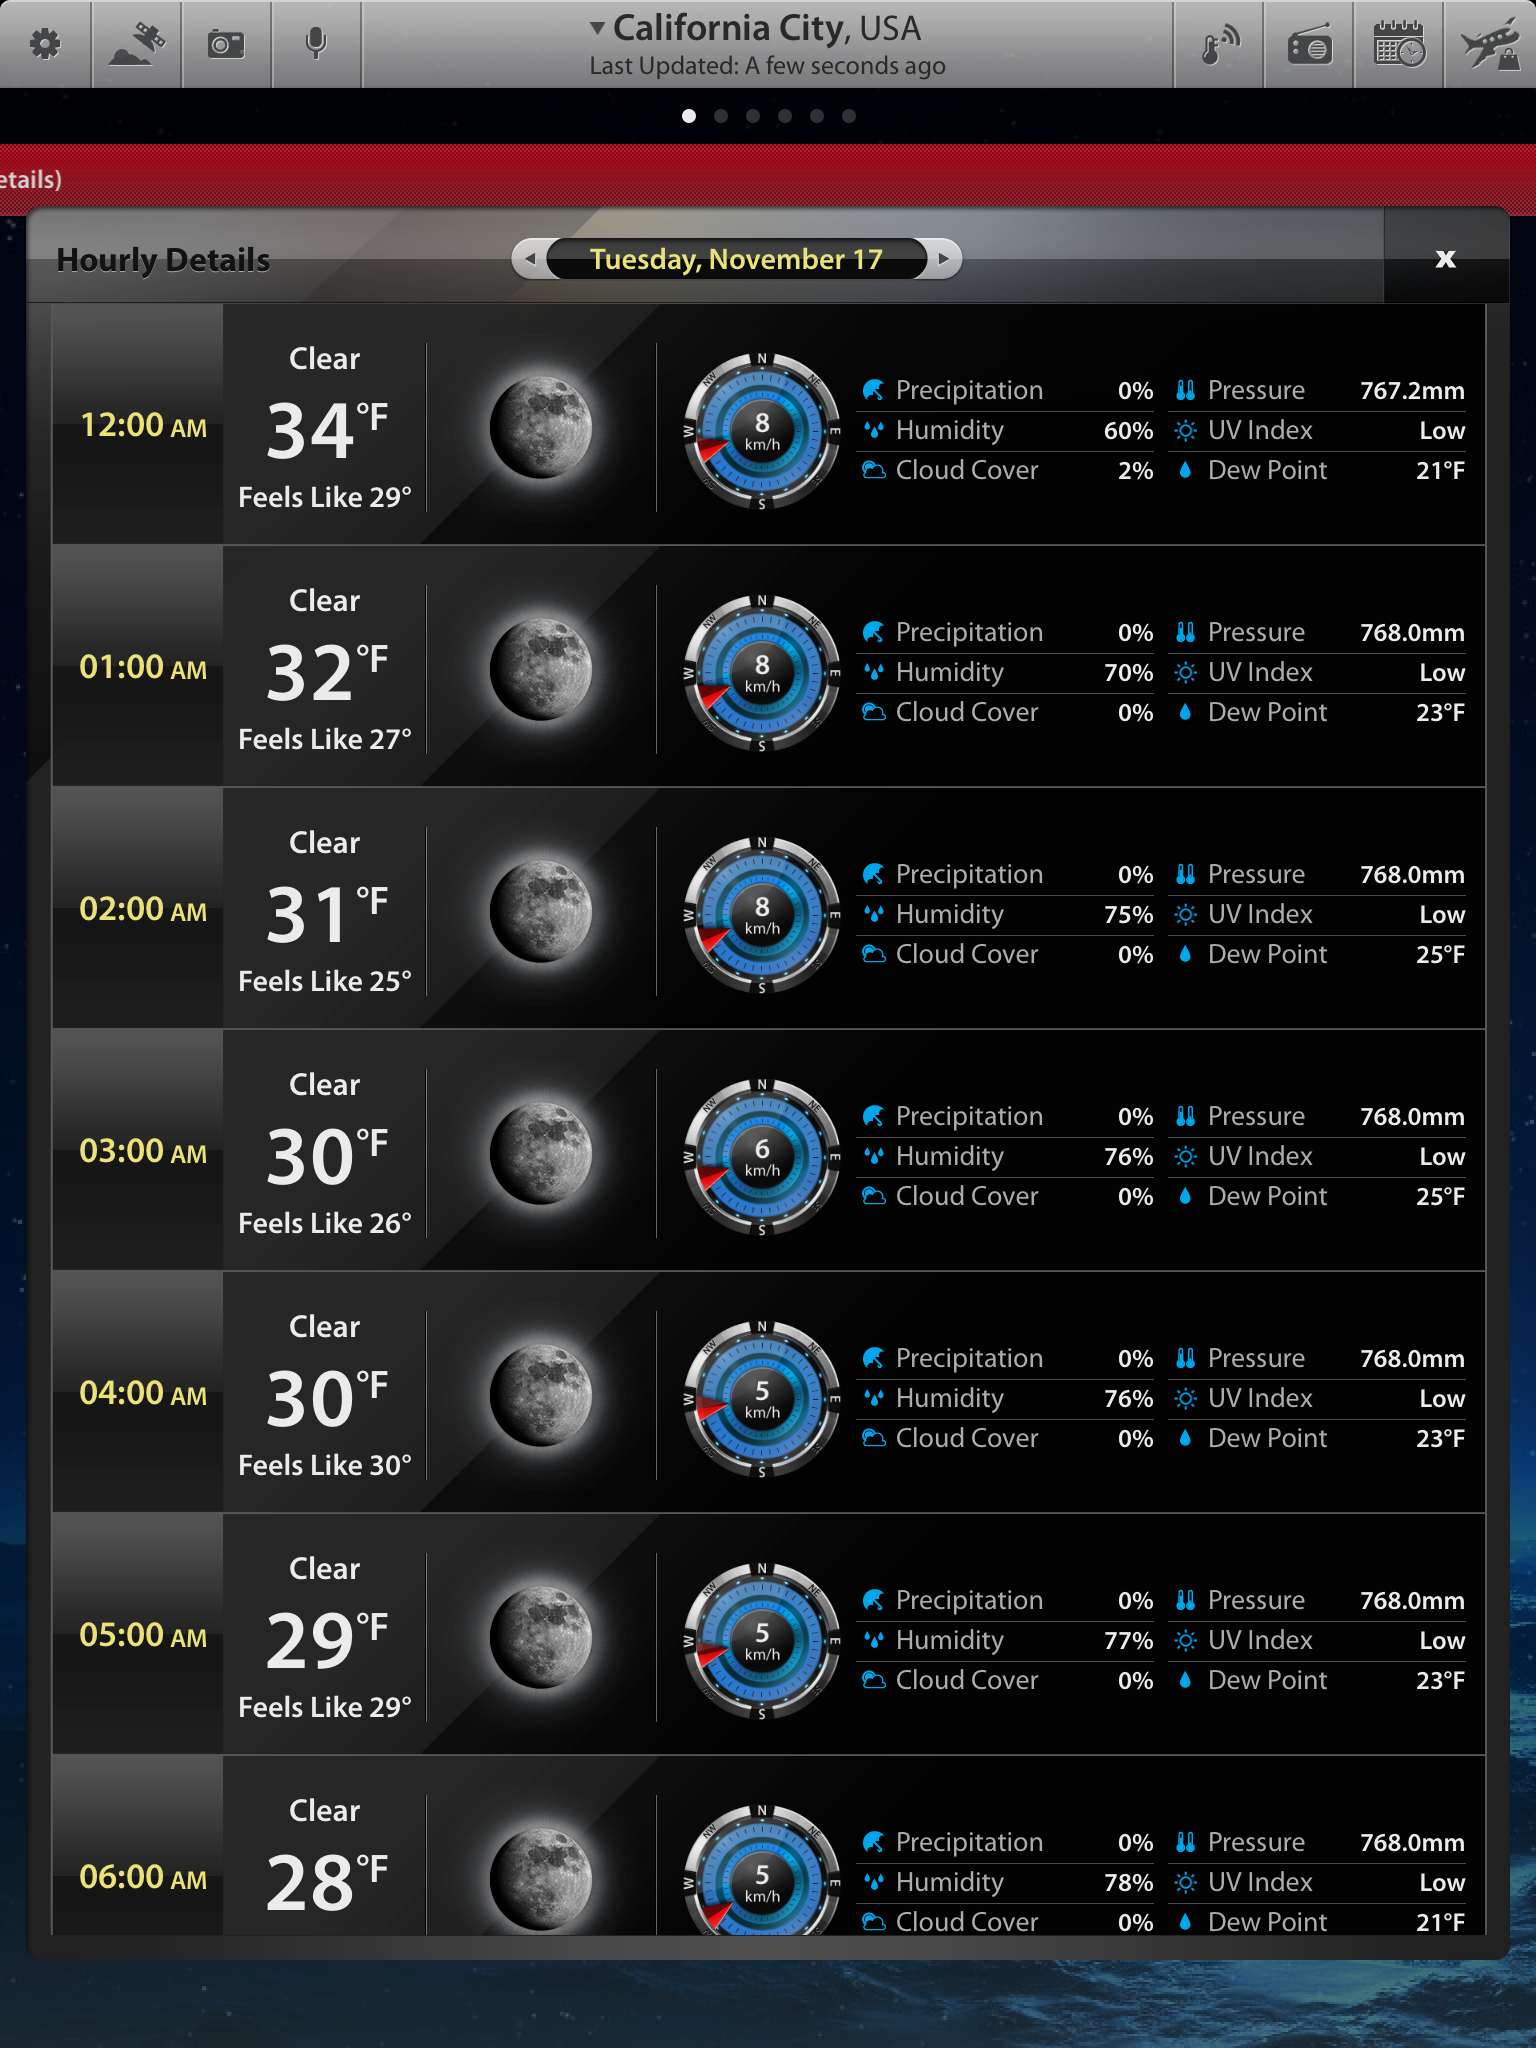 Hourly Weather Details